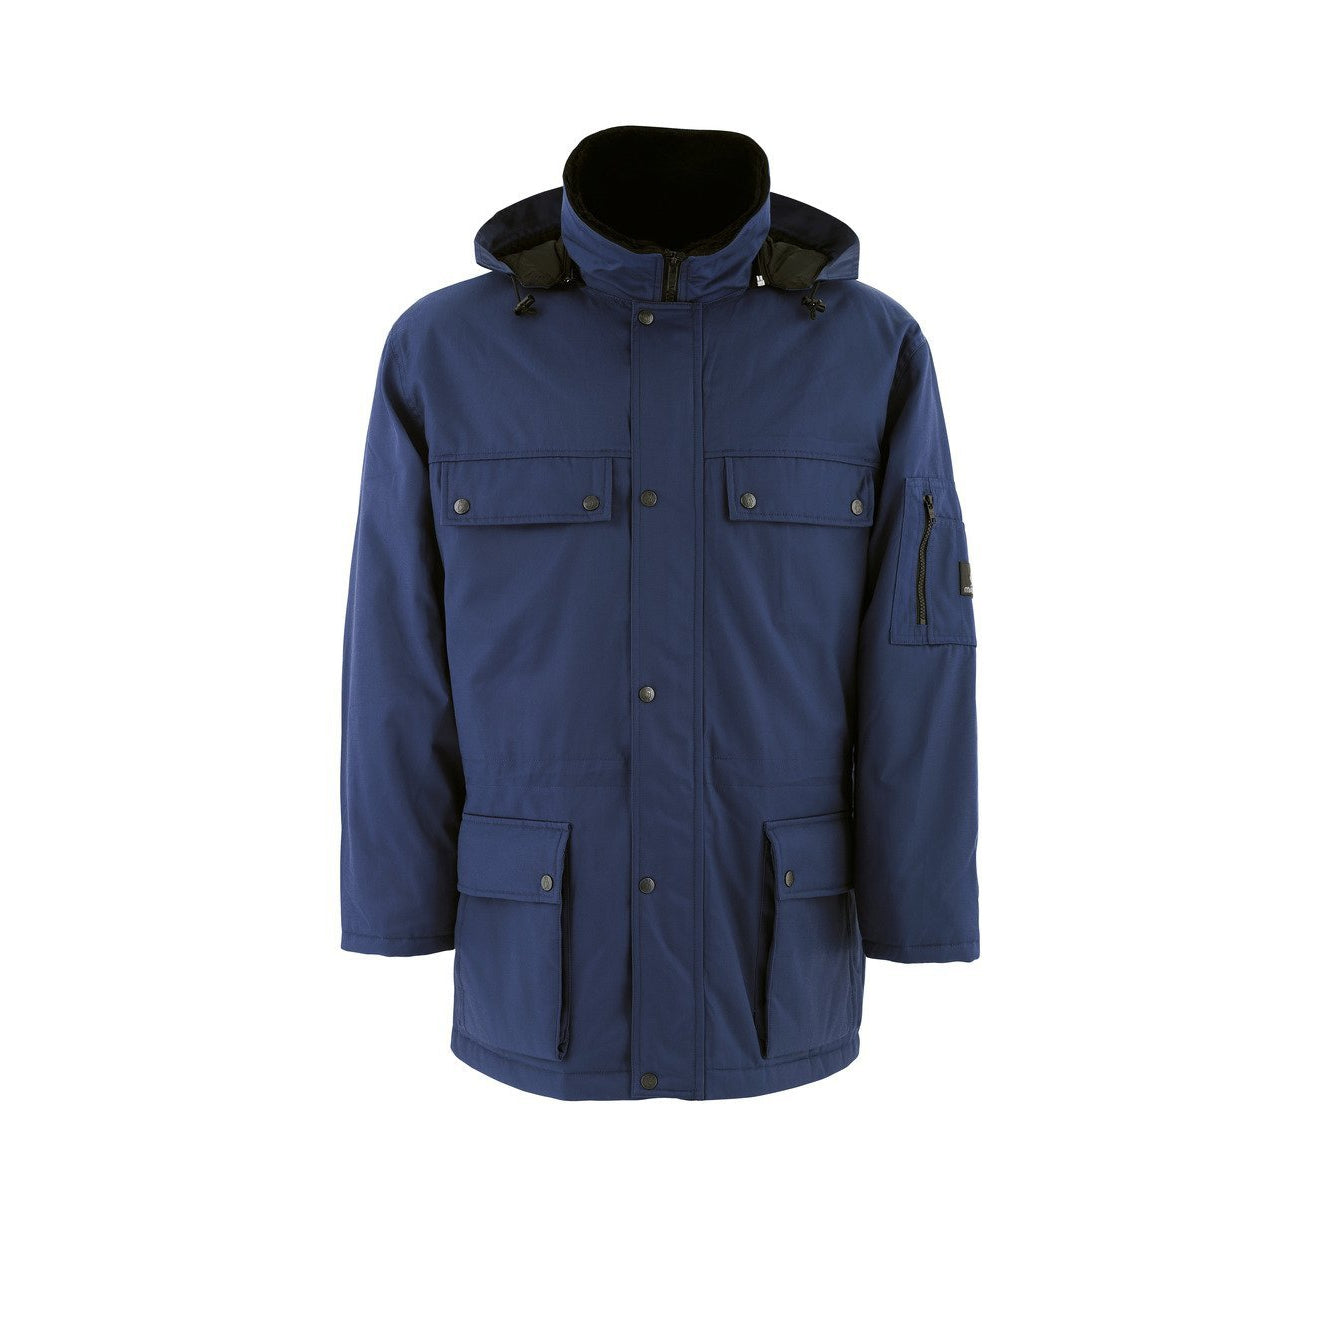 Mascot Quebec Originals Parka Jacket